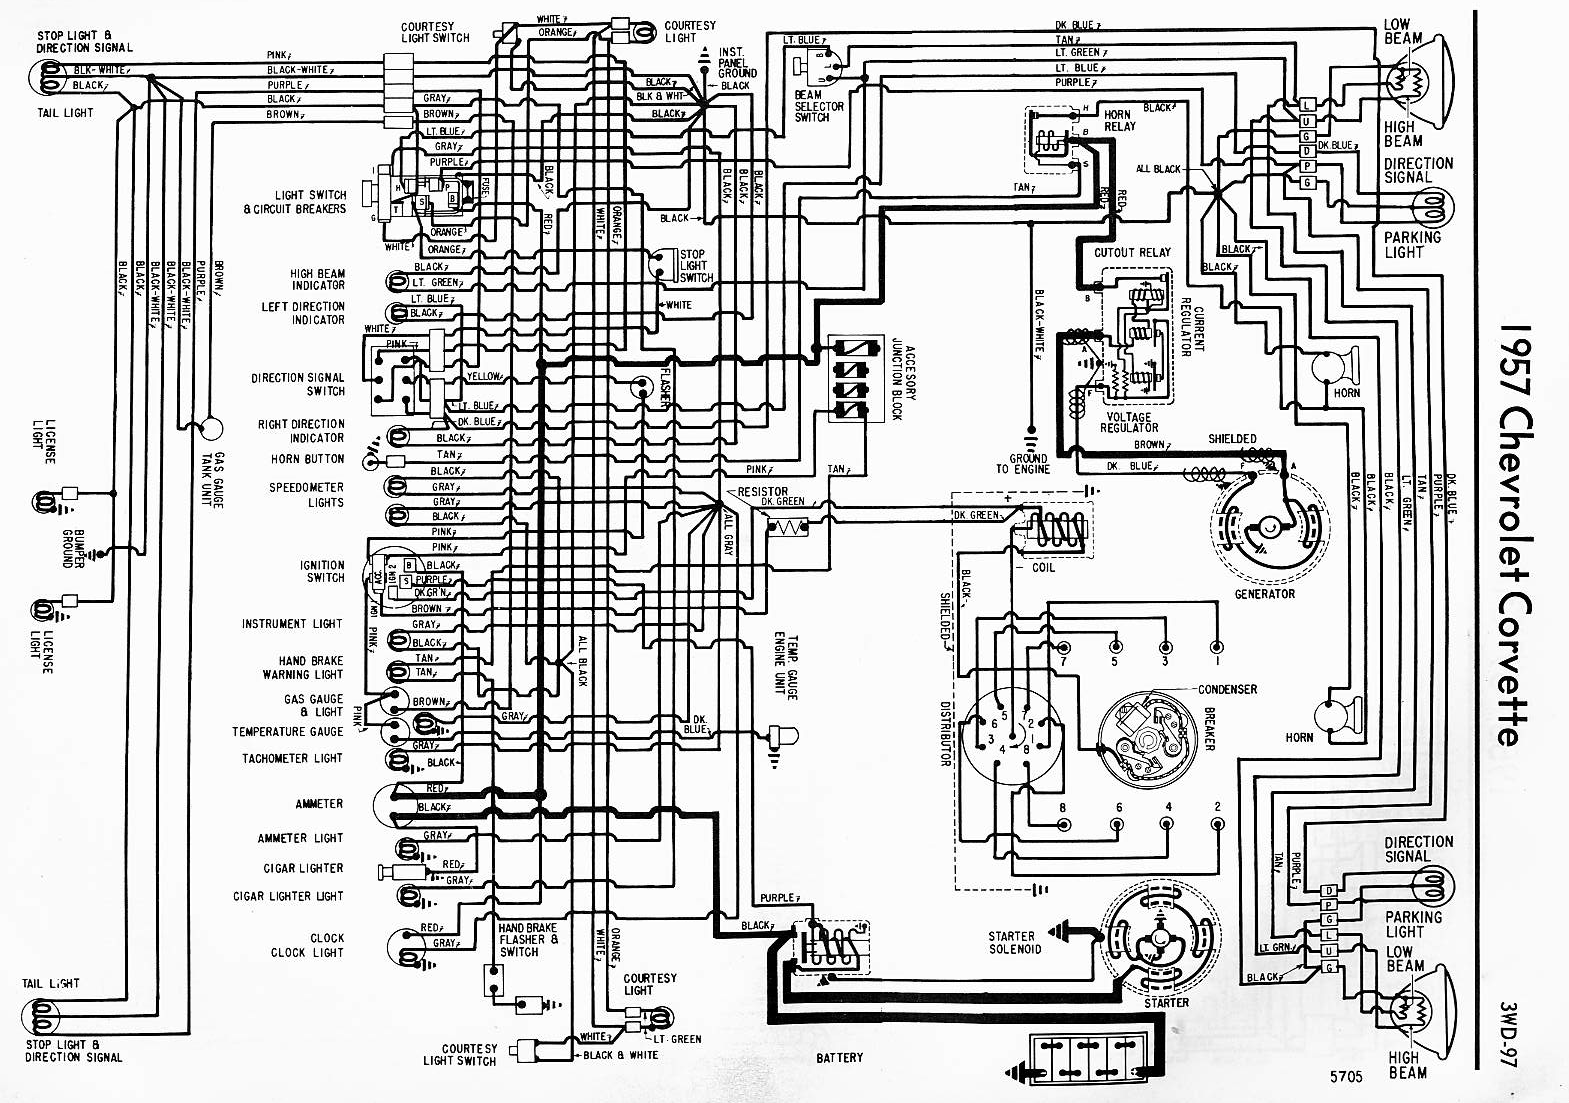 57 corvettte tracer schematic best one 1957 corvette wiring diagram willcox corvette, inc 1975 corvette wiring diagram at reclaimingppi.co